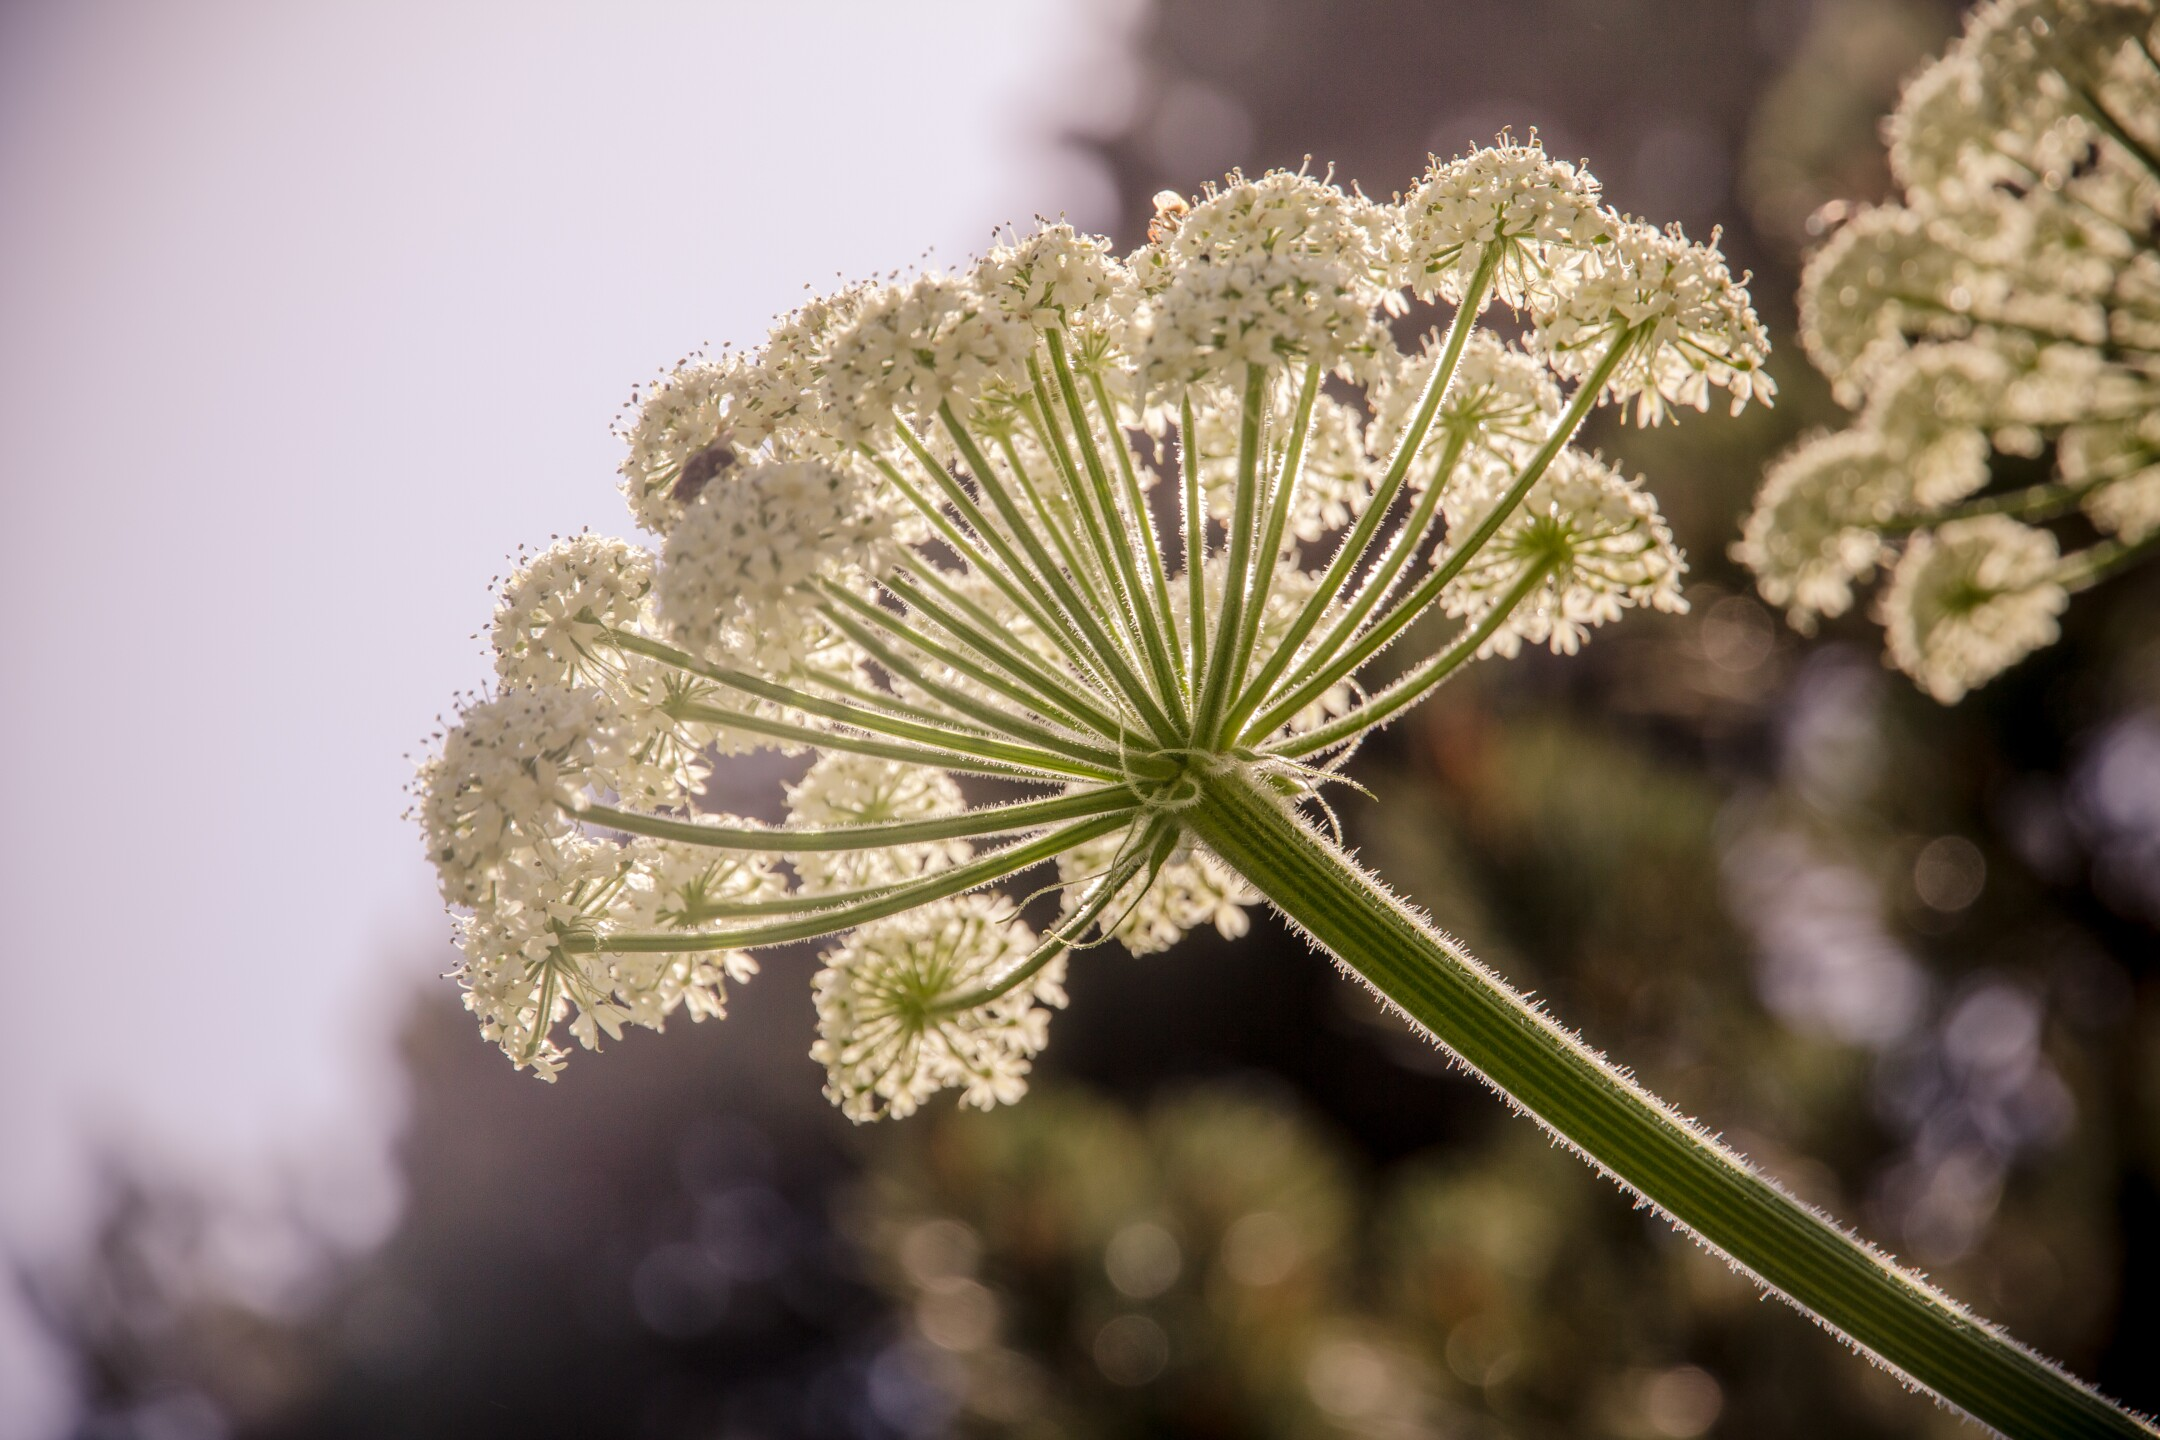 Photos: Sightings of dangerous Giant Hogweed plant reported inVirginia